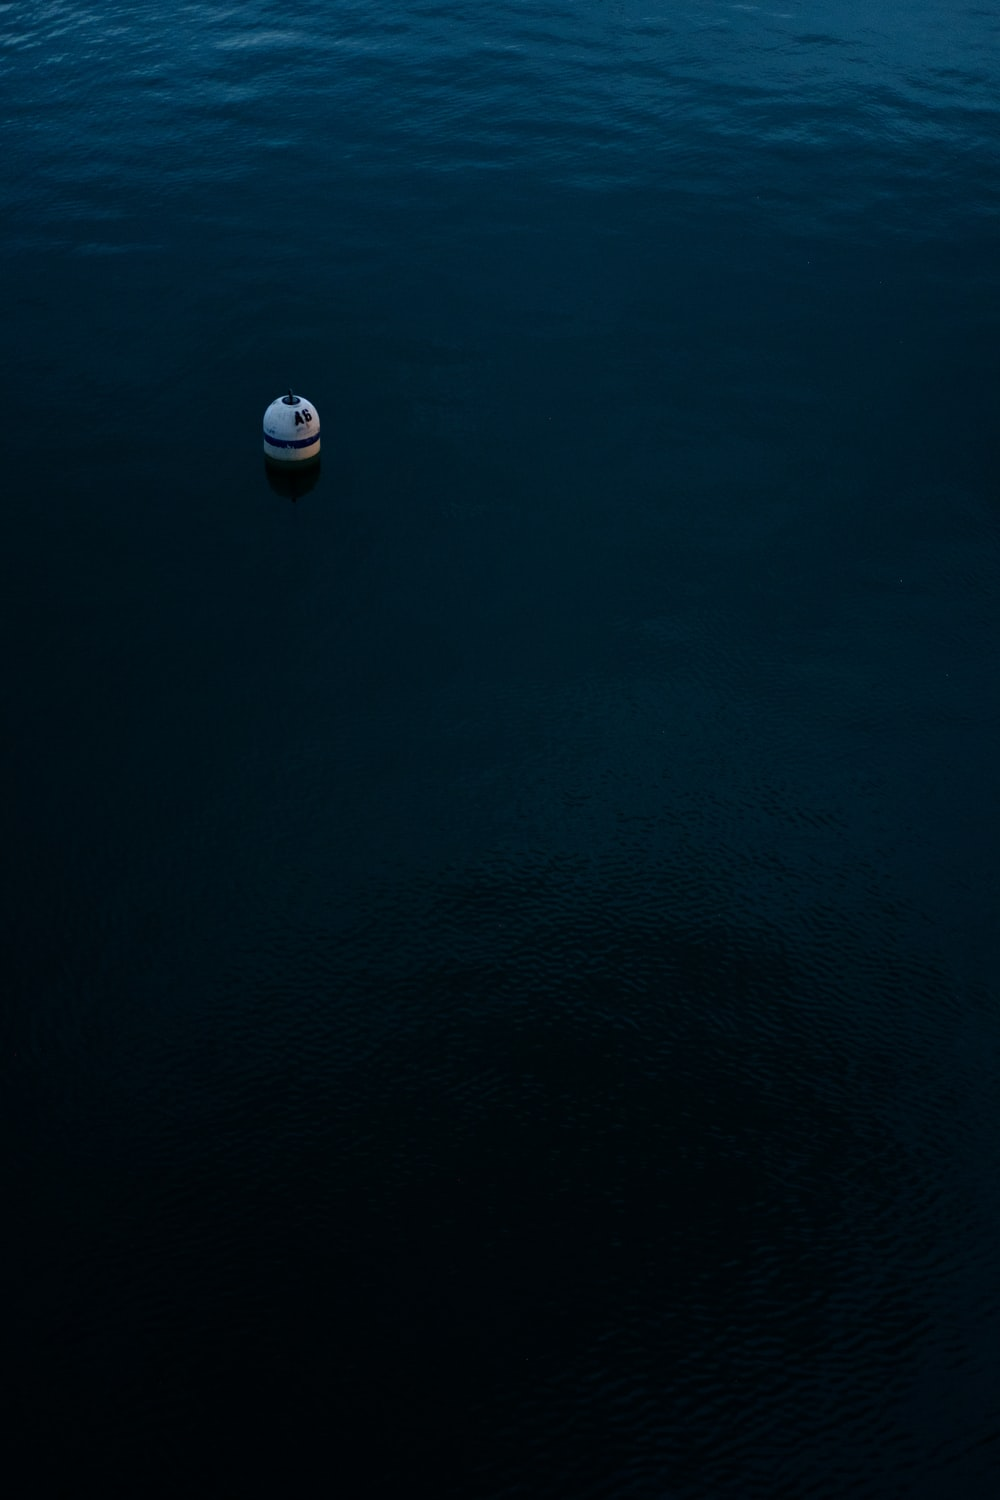 white toy floating on body of water